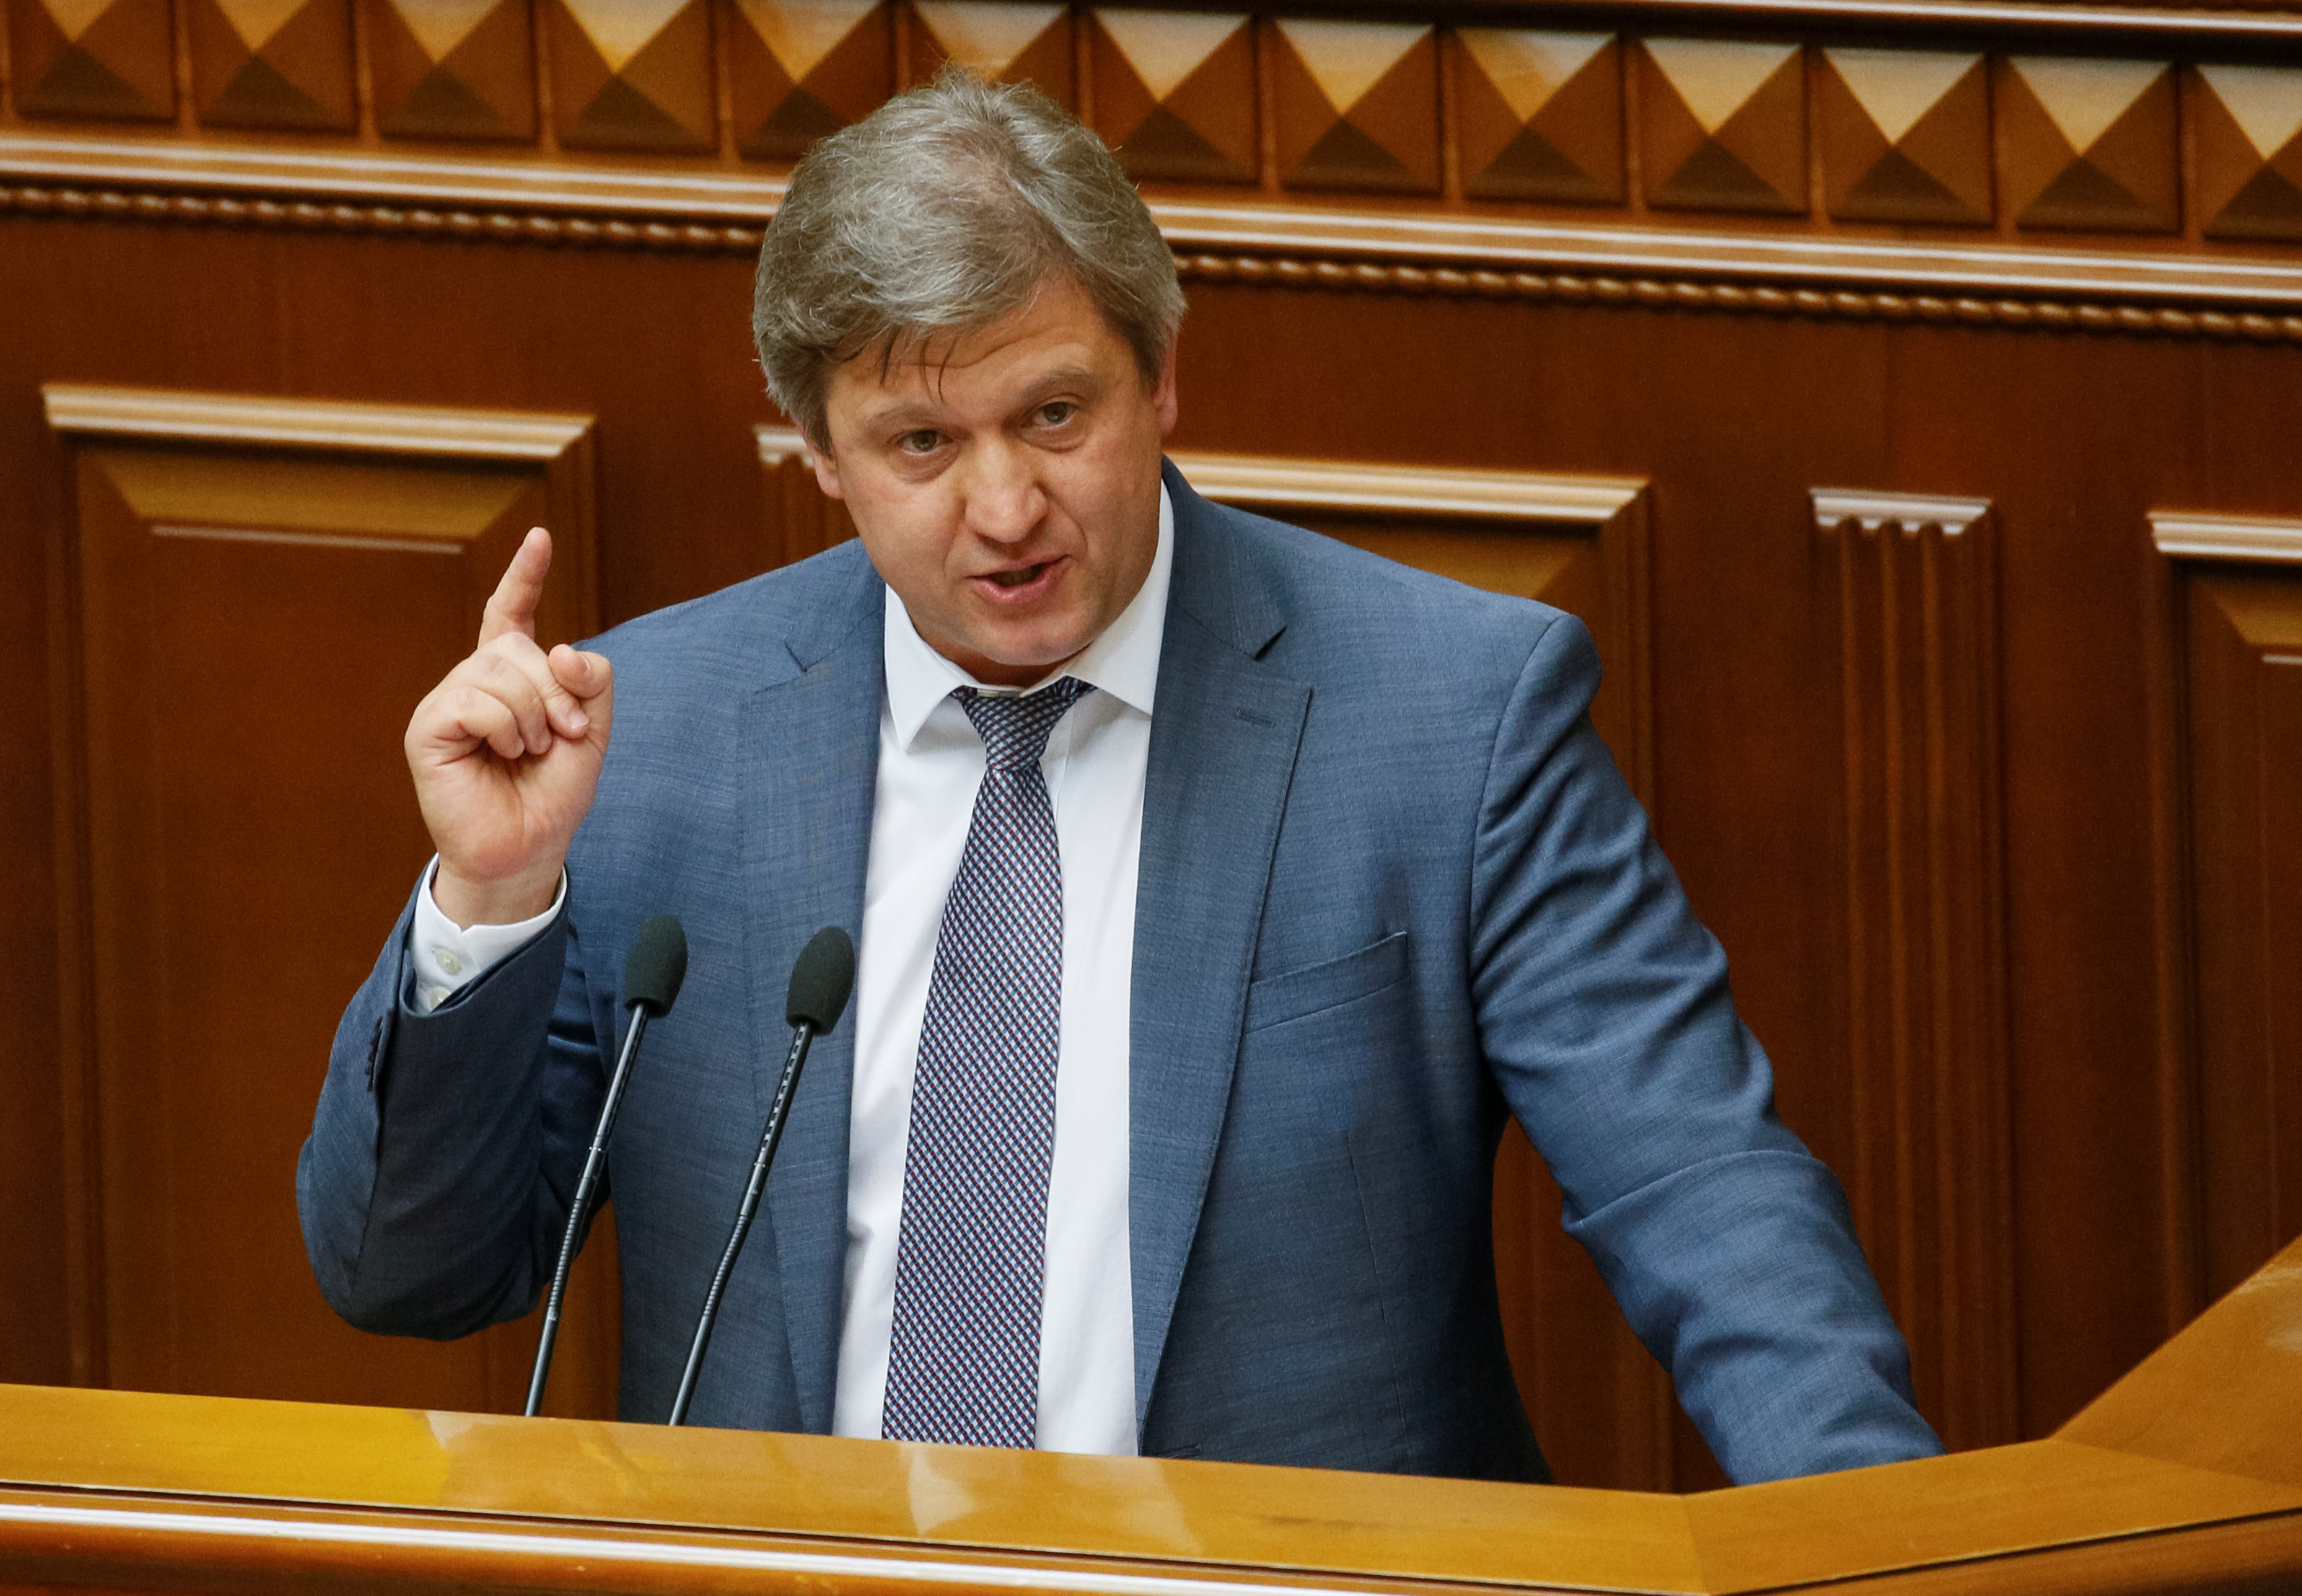 Ukrainian finance minister Oleksandr Danylyuk addresses lawmakers before voting on his dismissal during a parliament session in Kyiv, Ukraine June 7, 2018.